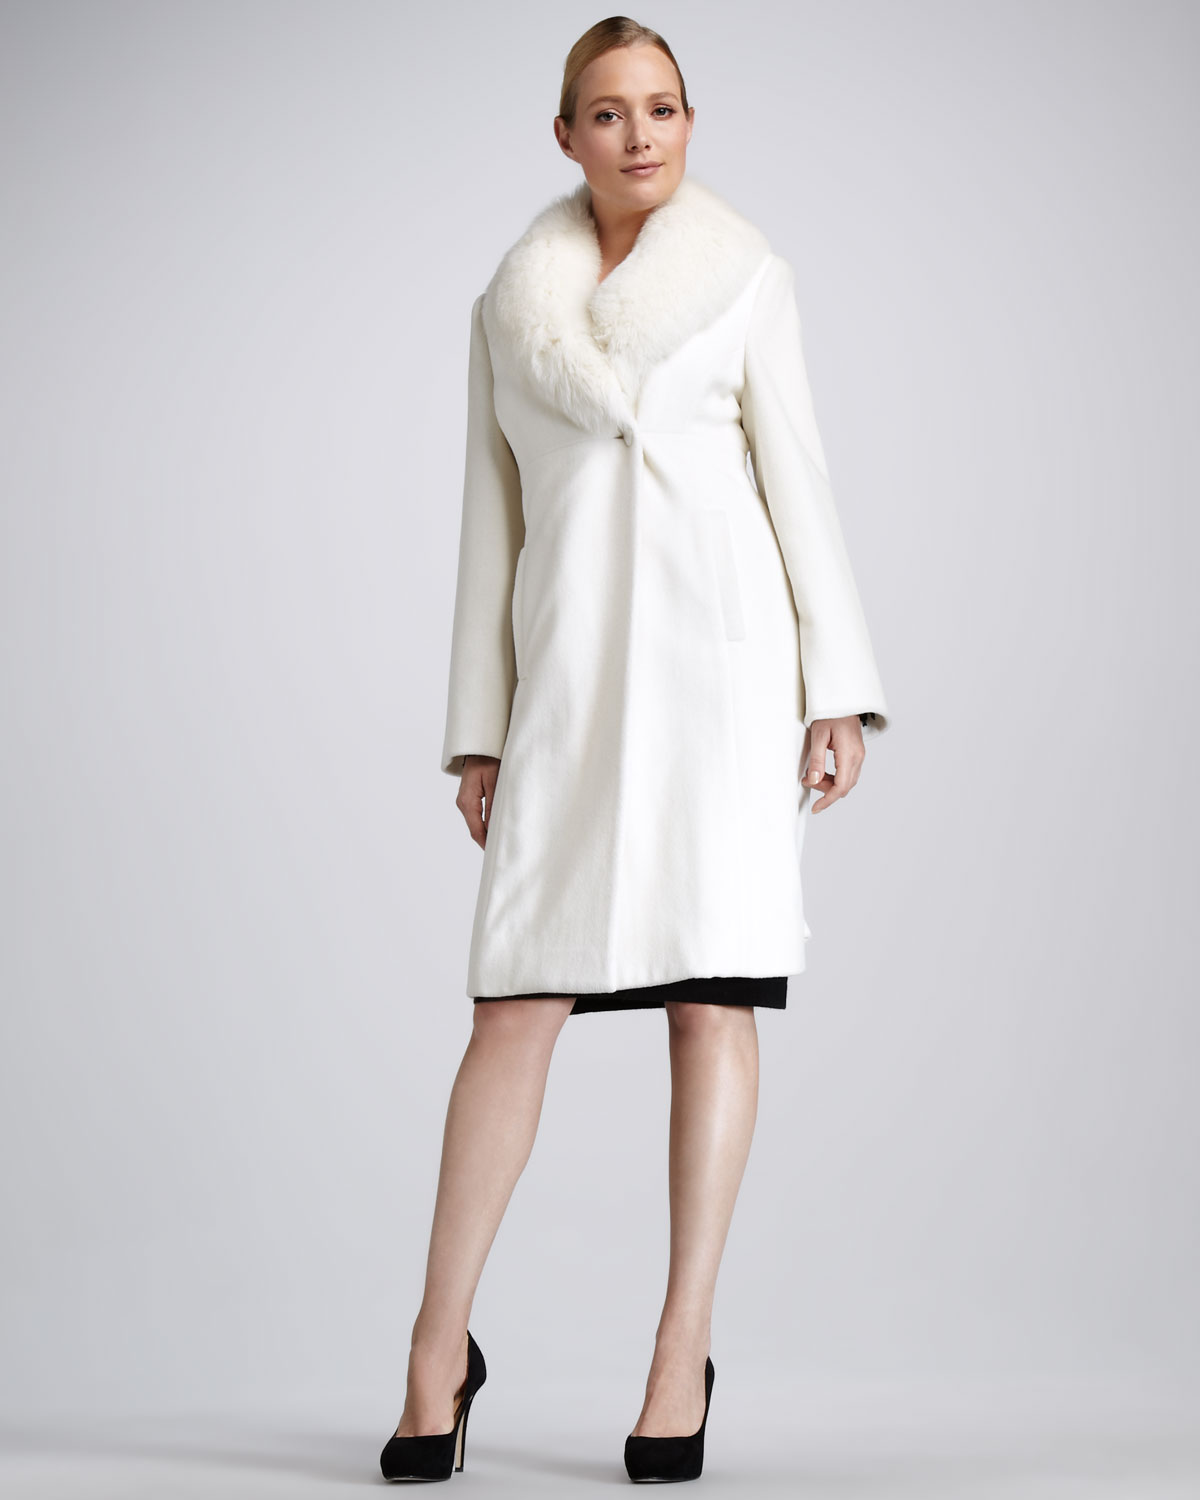 Sofia cashmere Fur collar Felt Coat in White | Lyst